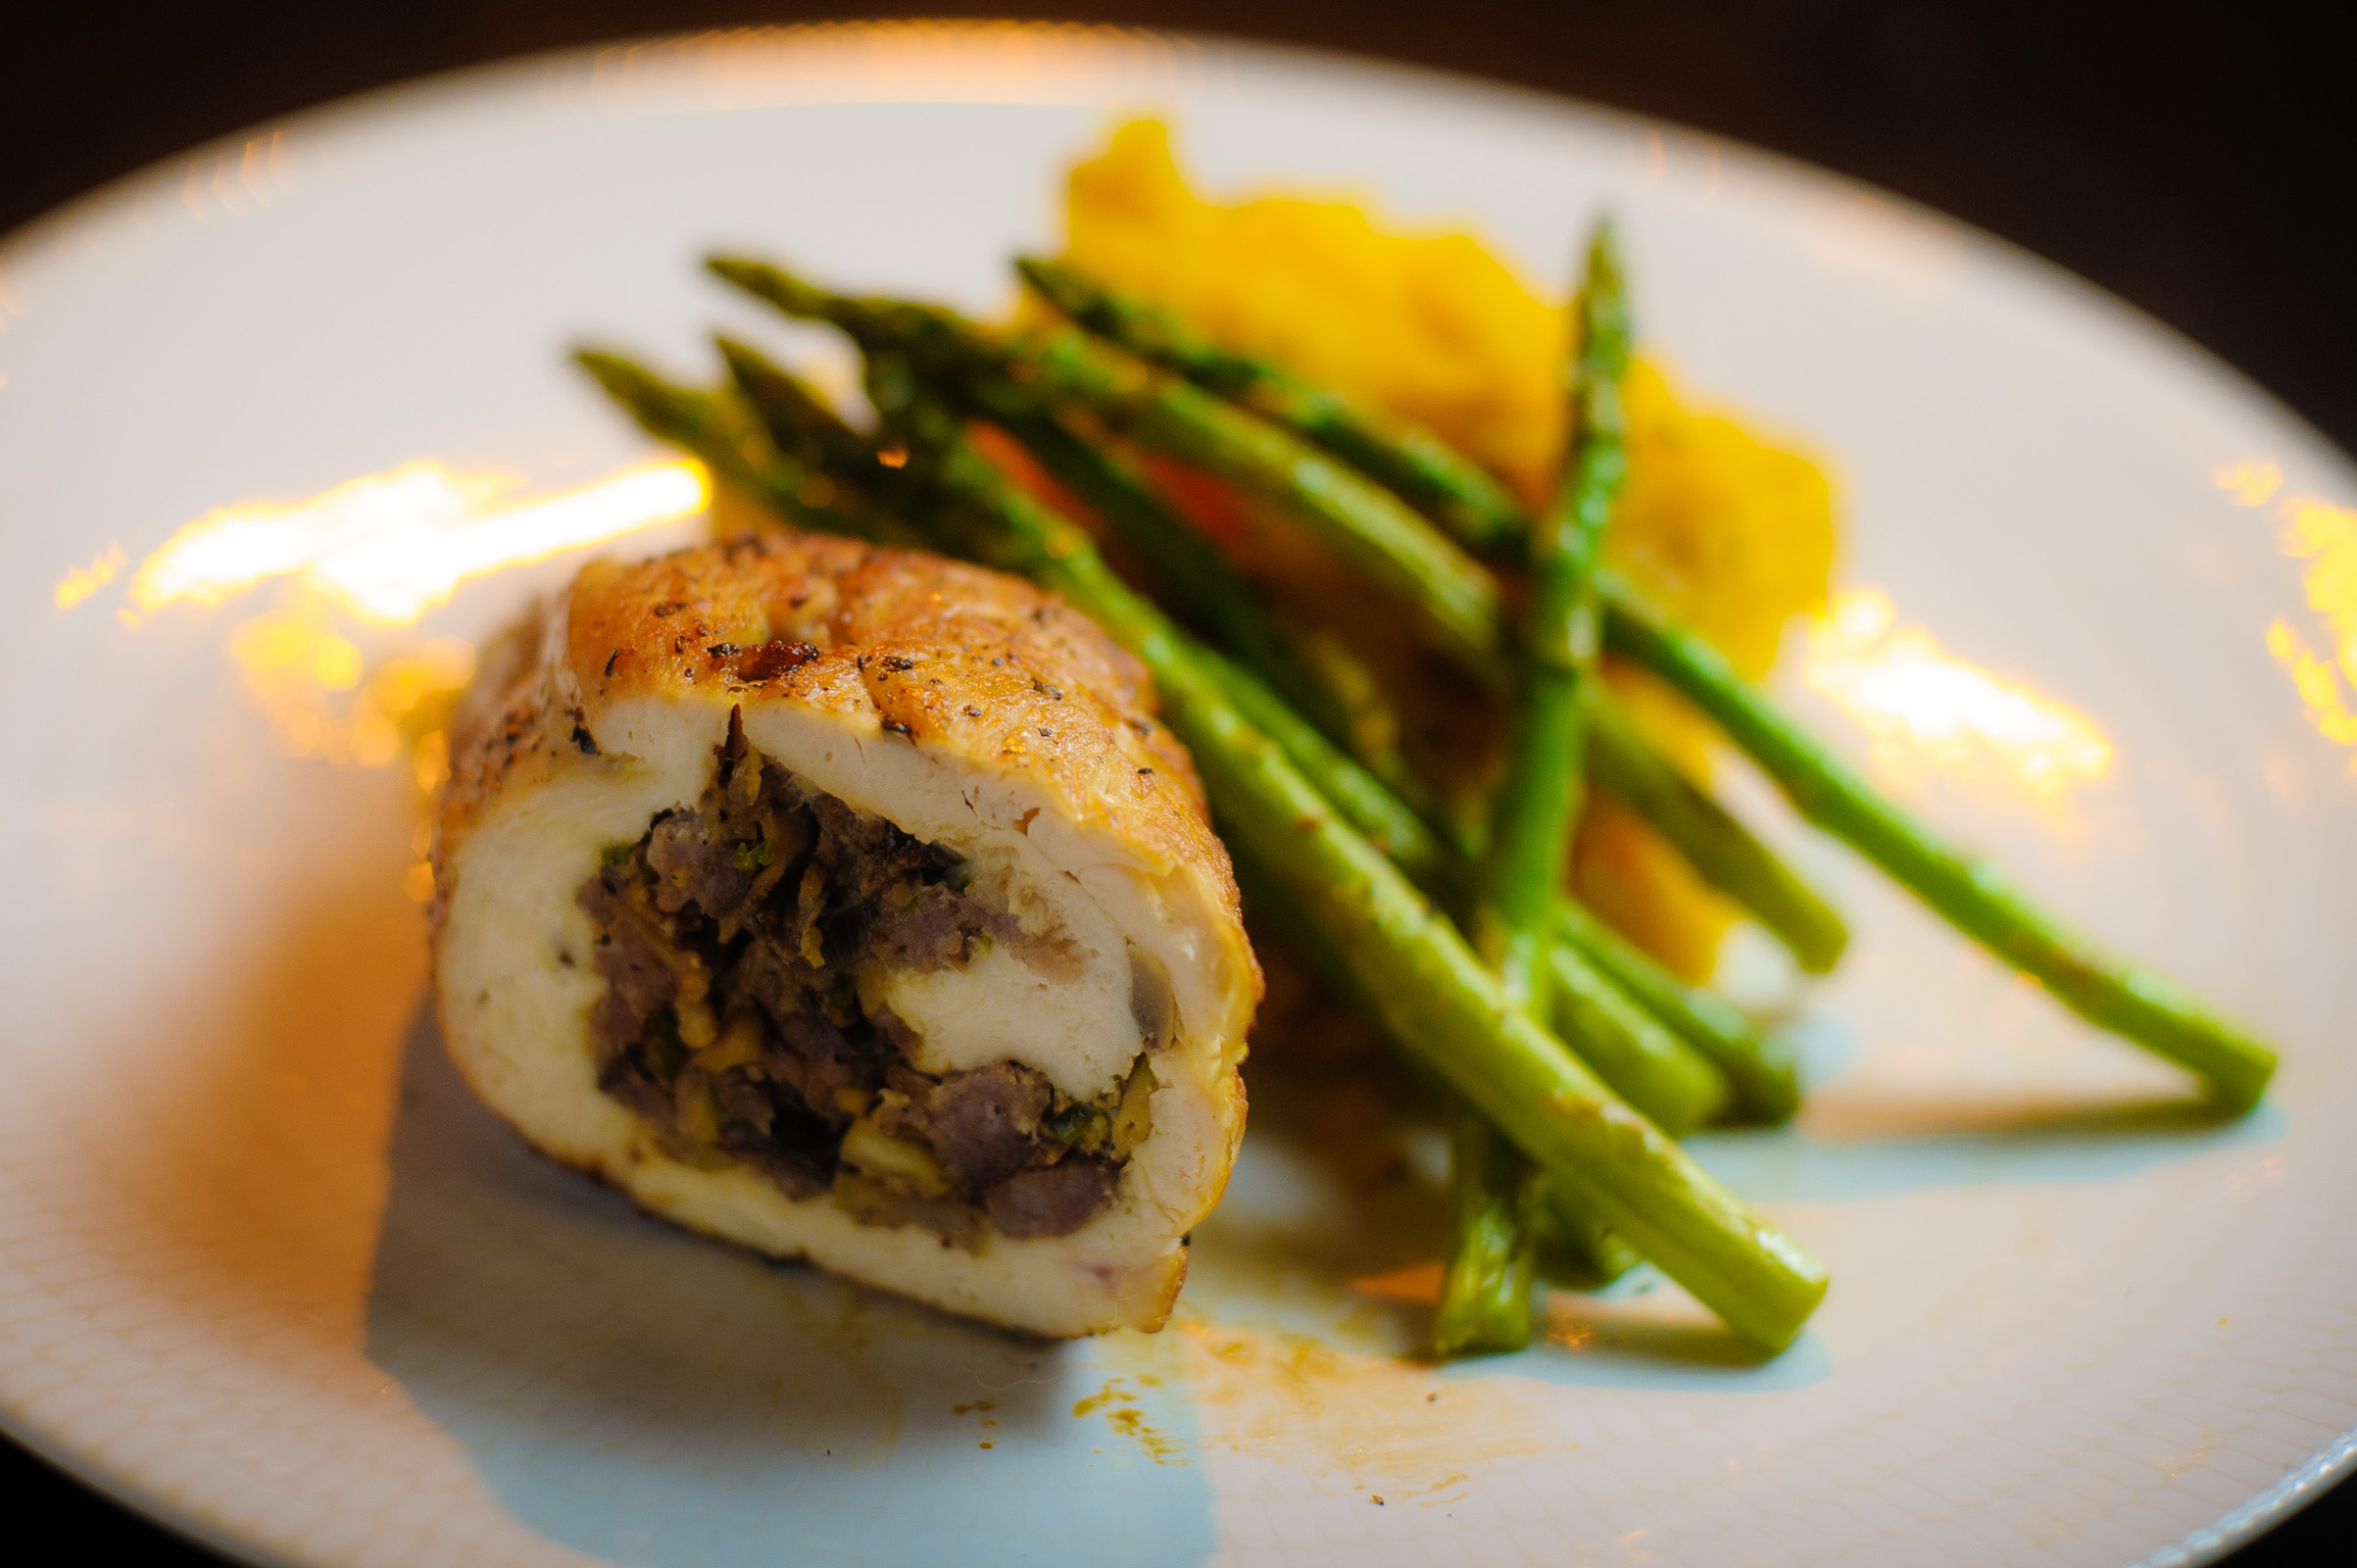 Stuffed chicken breast with asparagus and pureed sweet potato